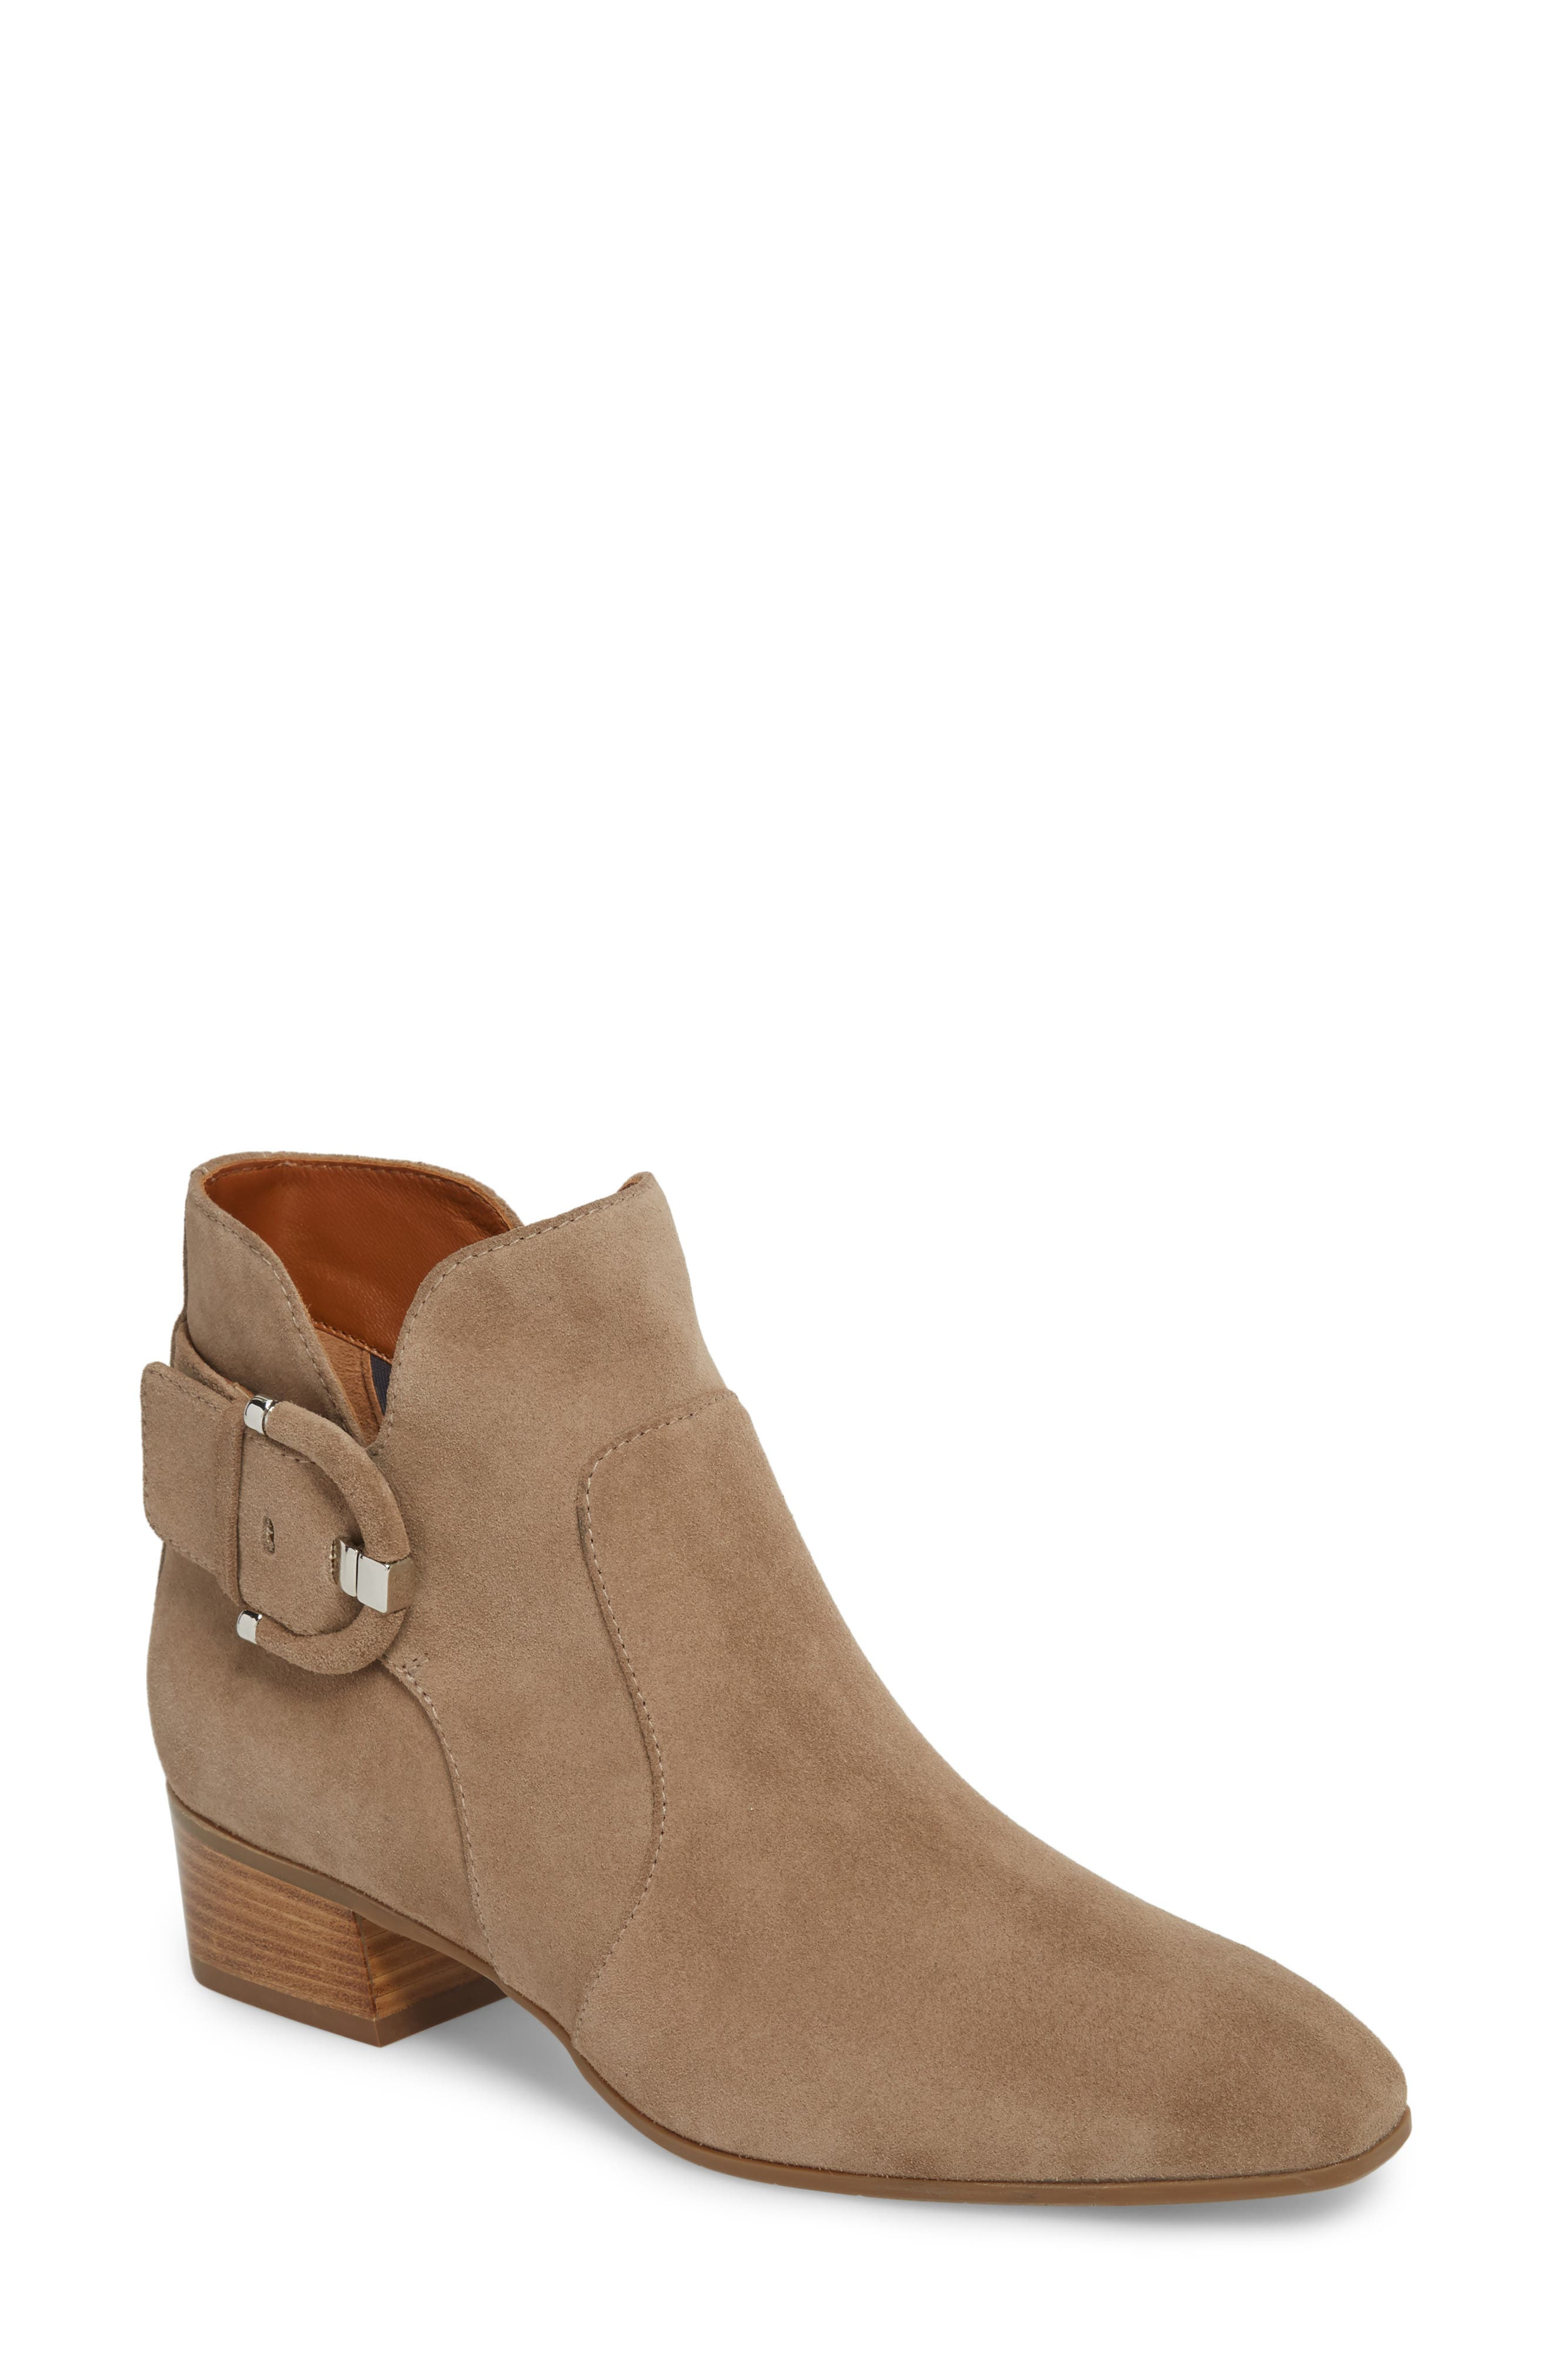 Fiamma Water Resistant Bootie,                             Main thumbnail 1, color,                             TAUPE